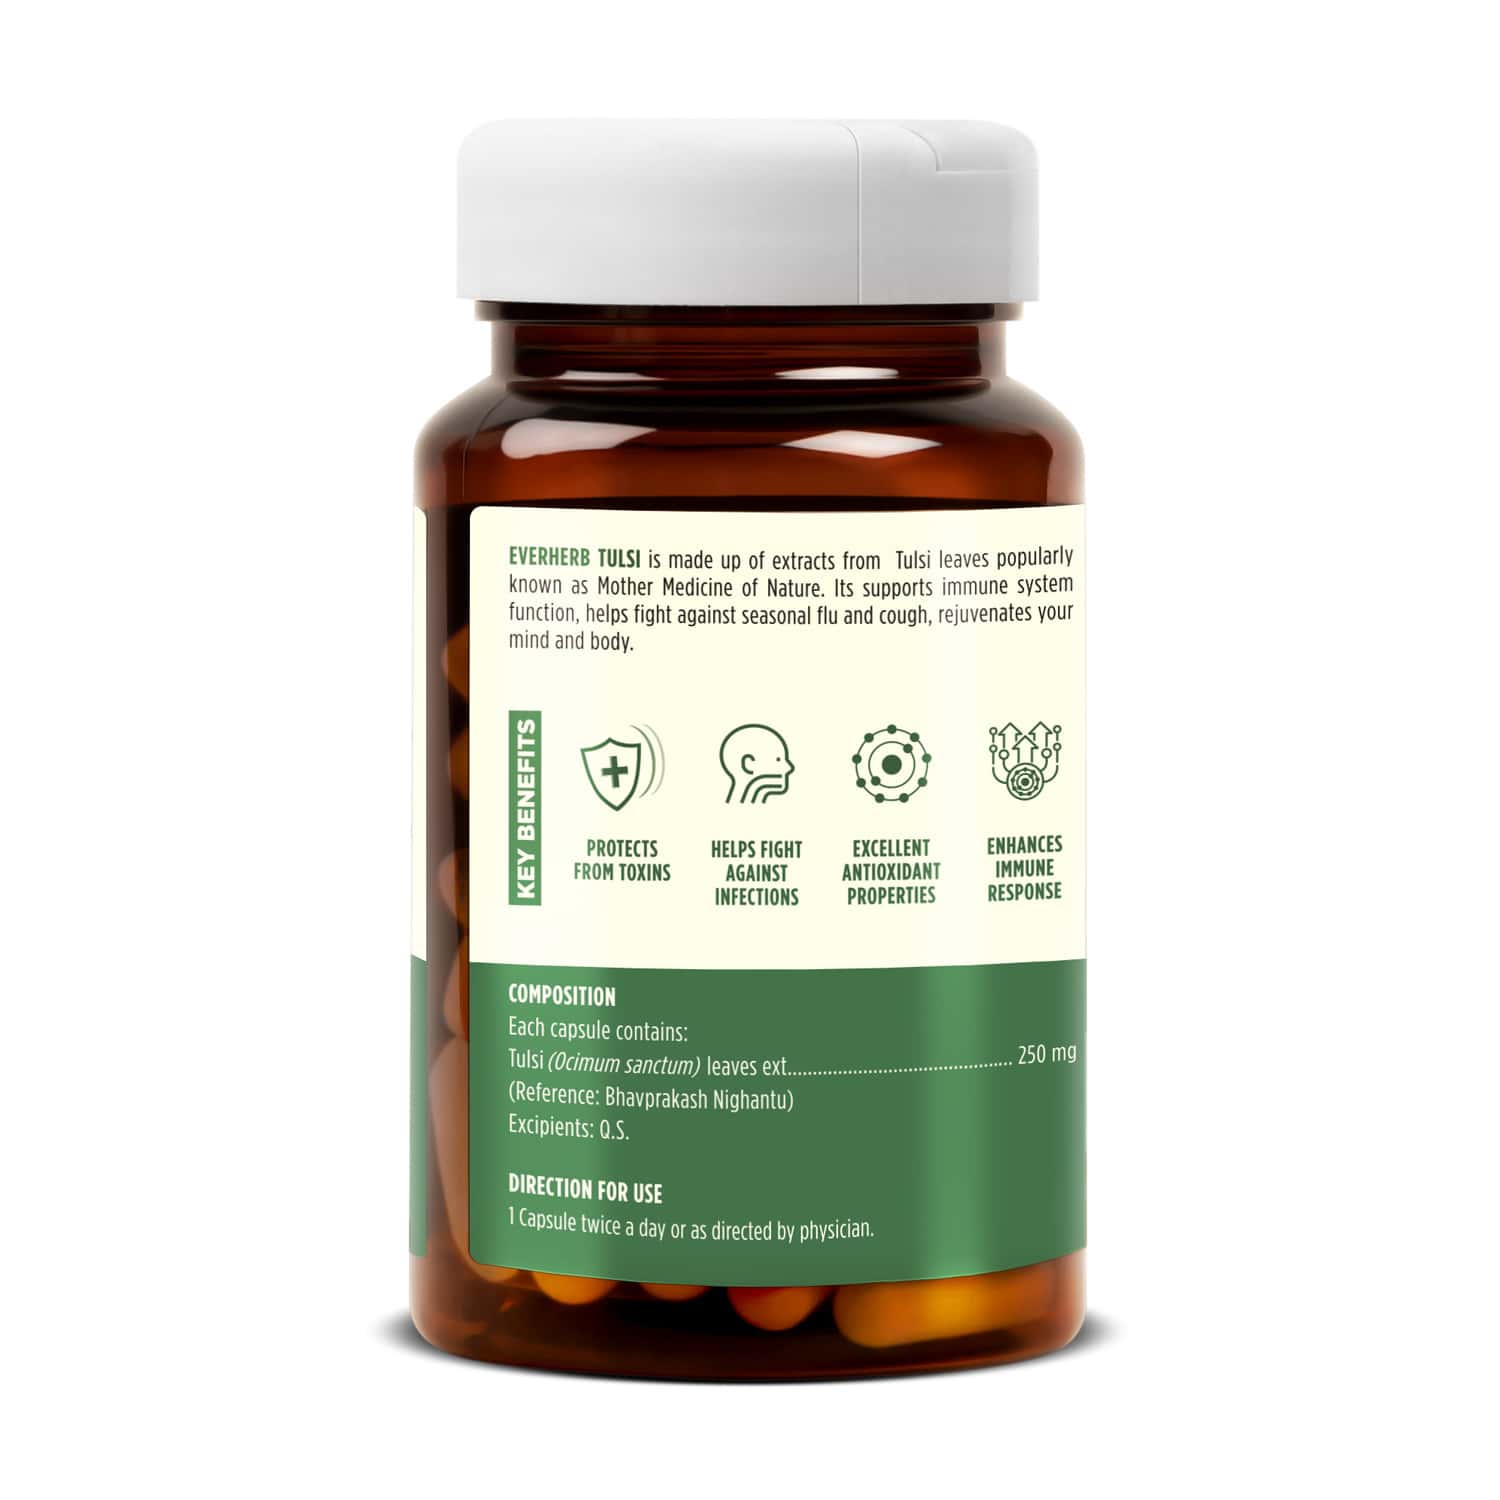 Everherb Tulsi - Immunity Booster Capsules - Fights Against Infection - Bottle Of 60